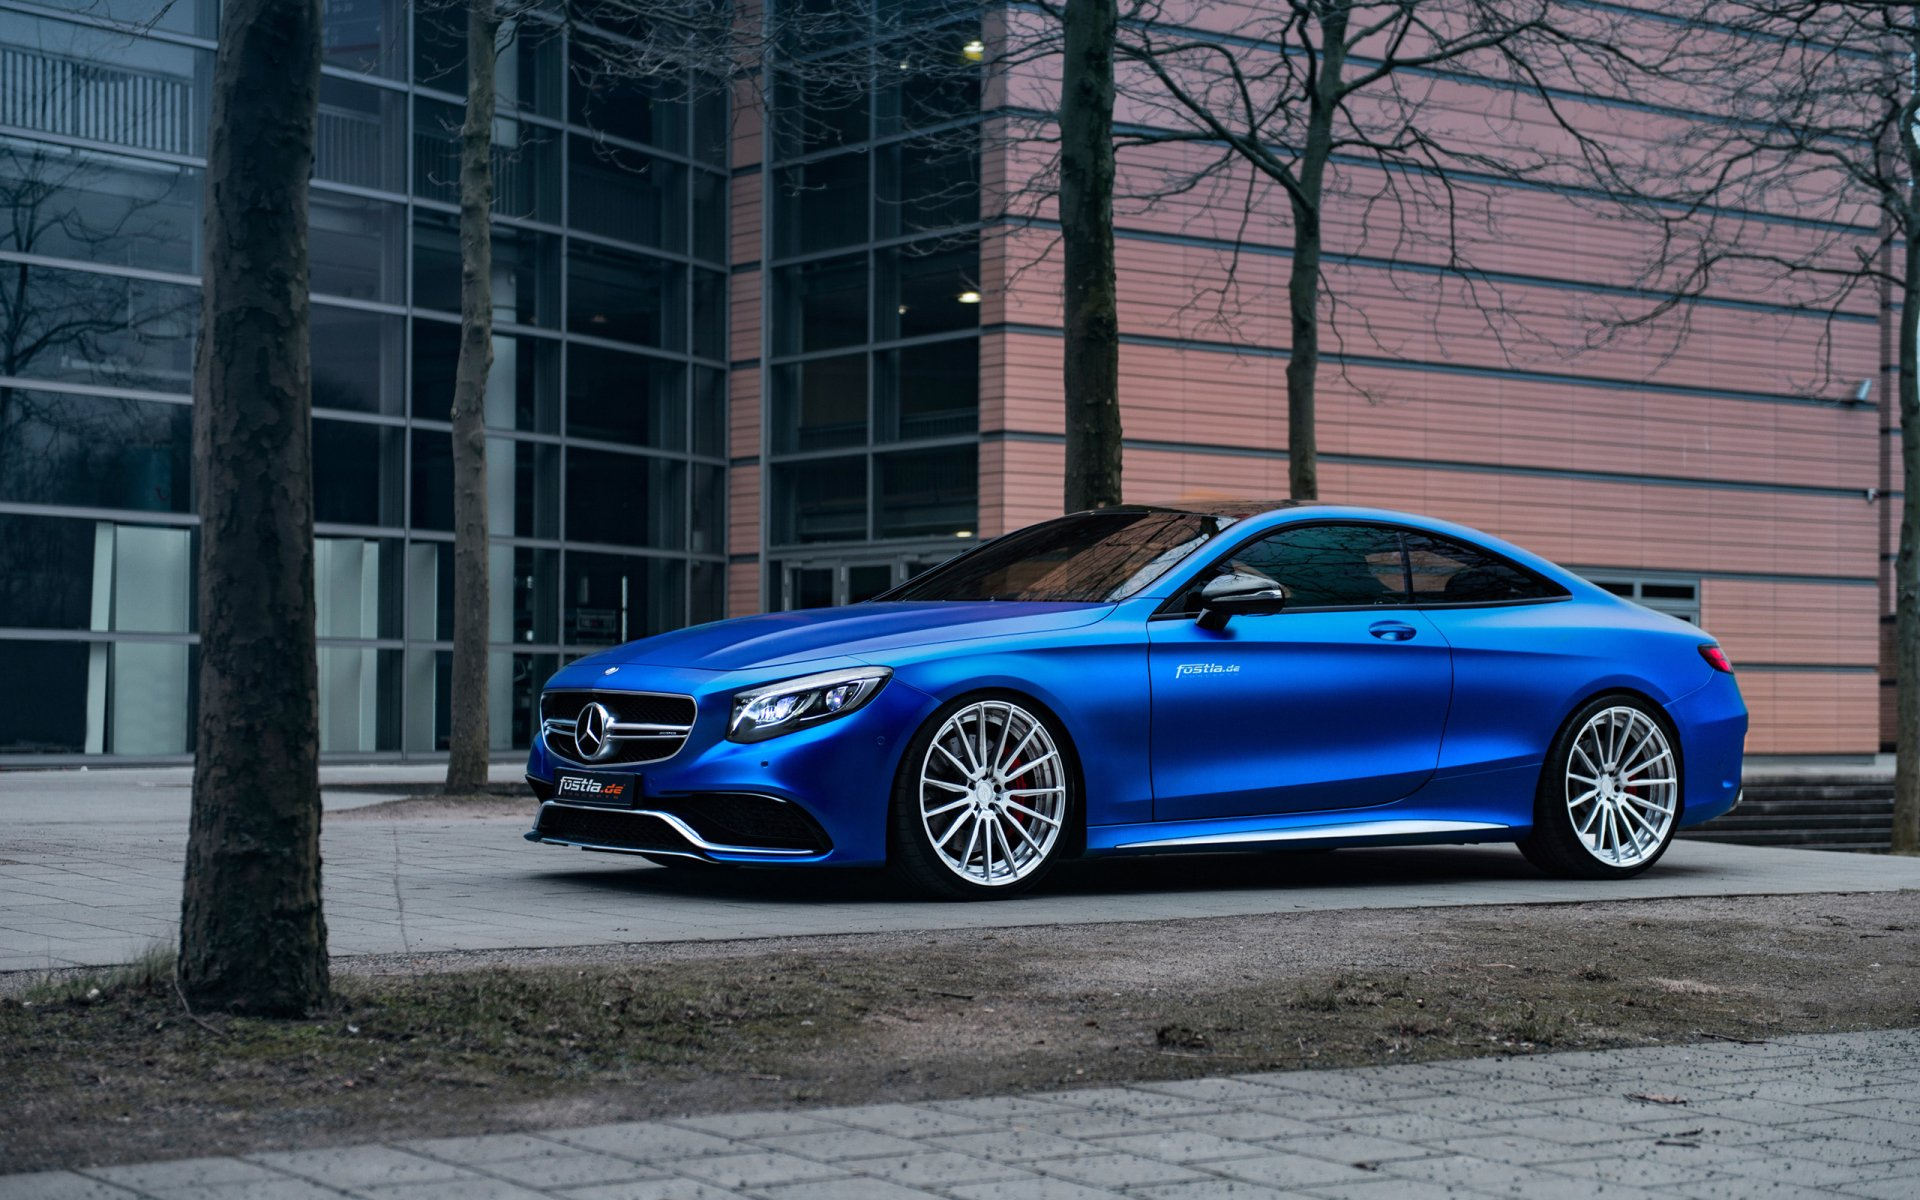 S 63 Amg Wallpaper: Mercedes-Benz S63 AMG Fondo De Pantalla HD